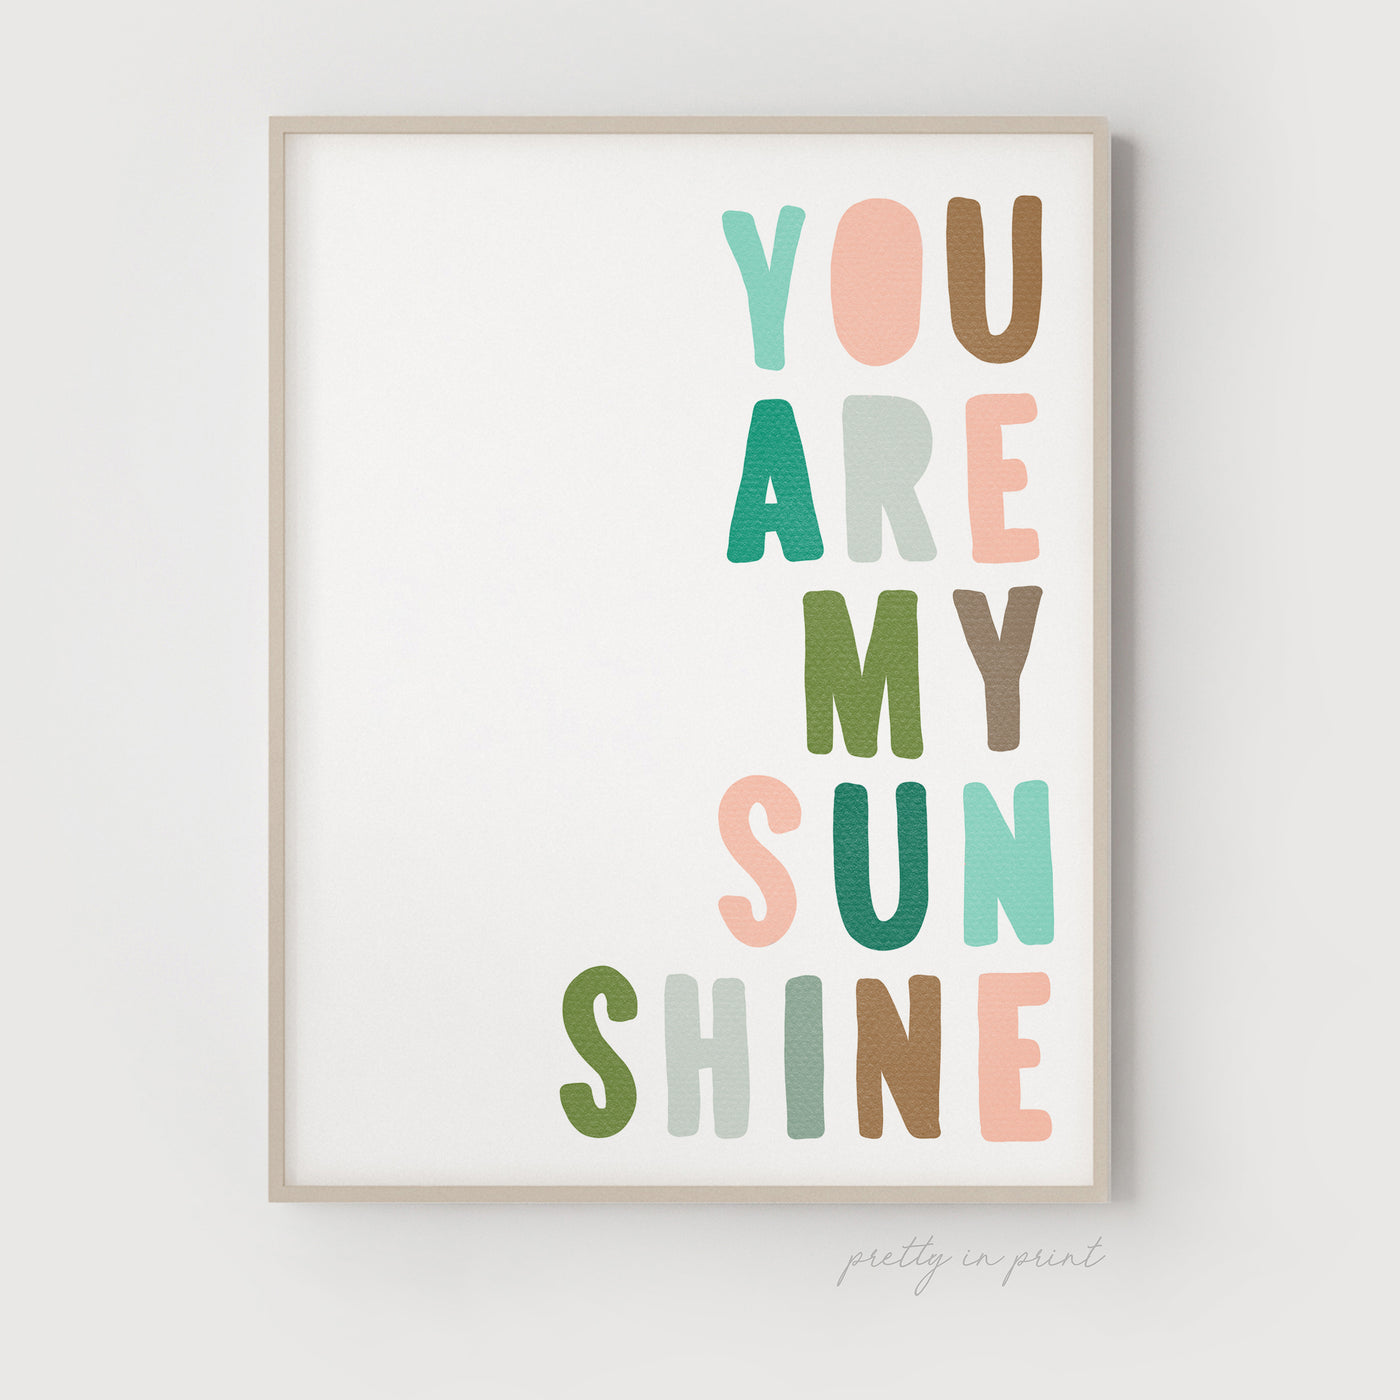 You Are My Sunshine Quote | Nursery Art | Jungle Colours - Pretty in Print Art